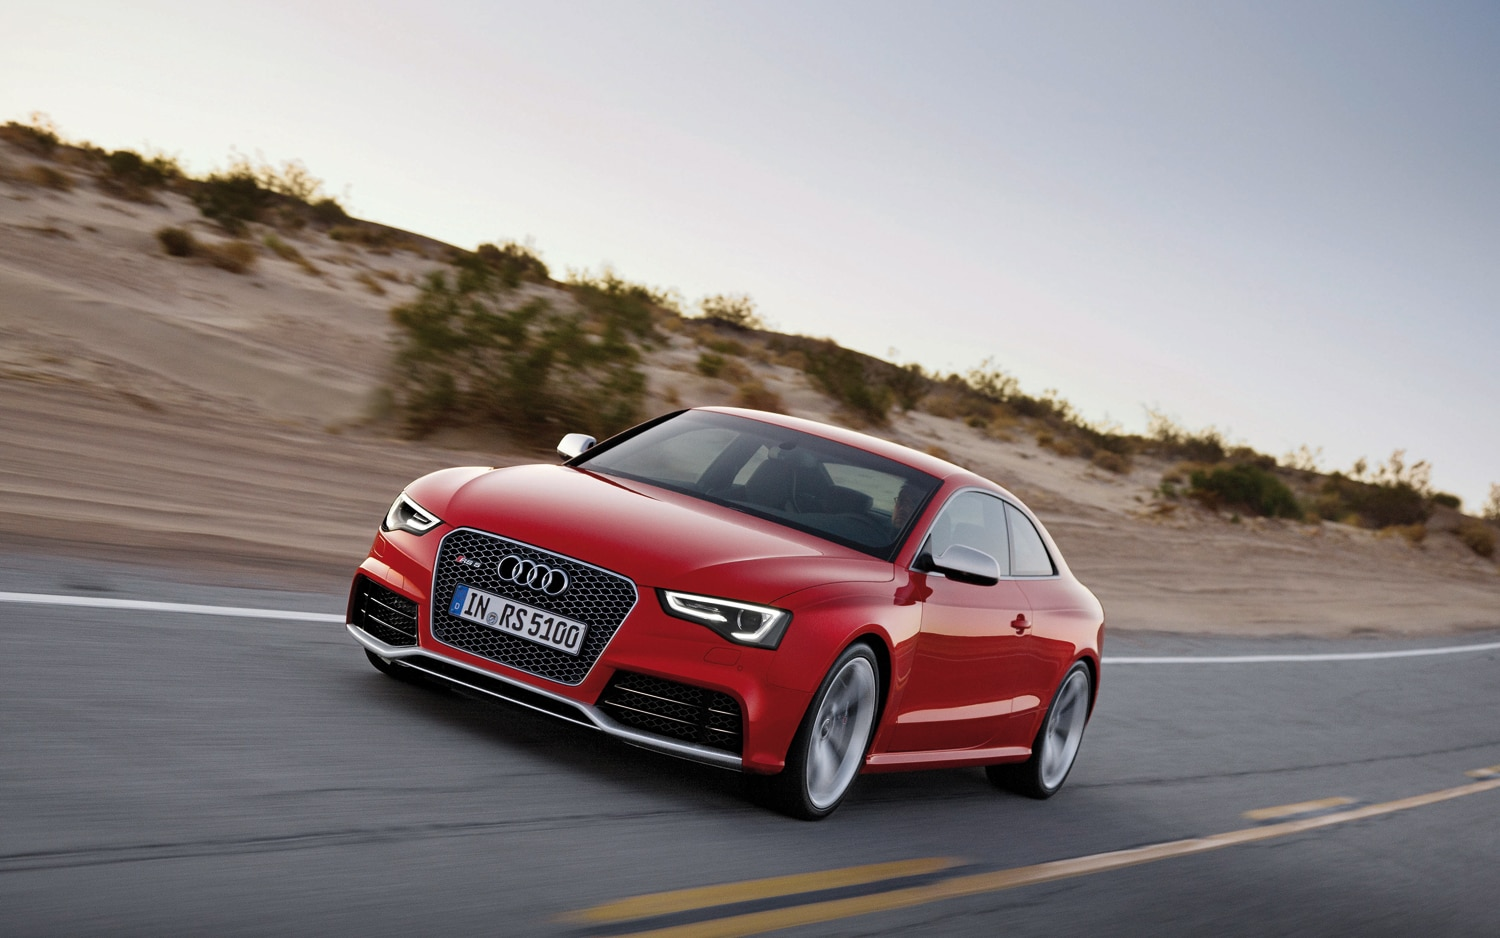 2013 Audi RS5 Front Left View 21